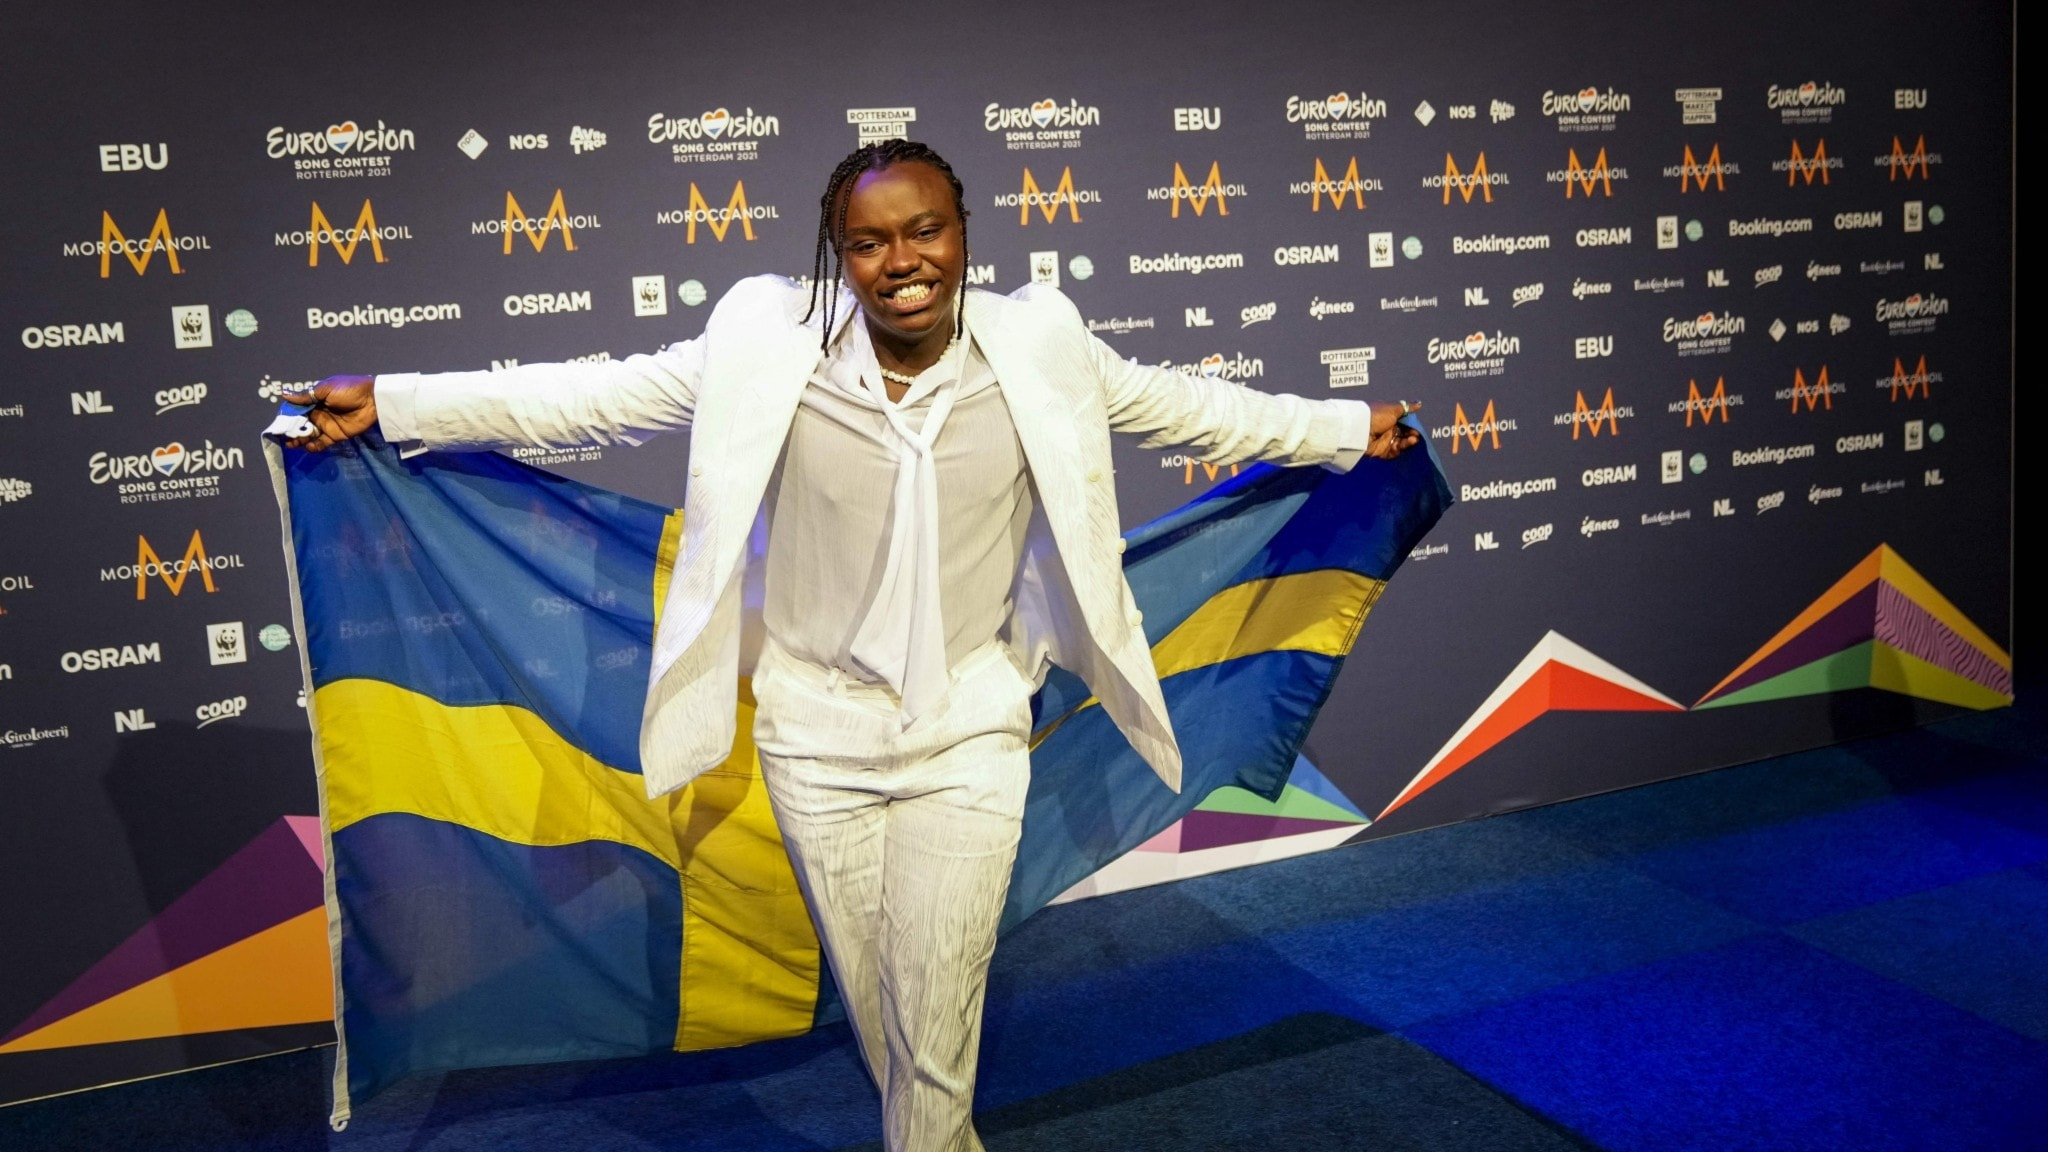 A person at a music event in front of a Swedish flag